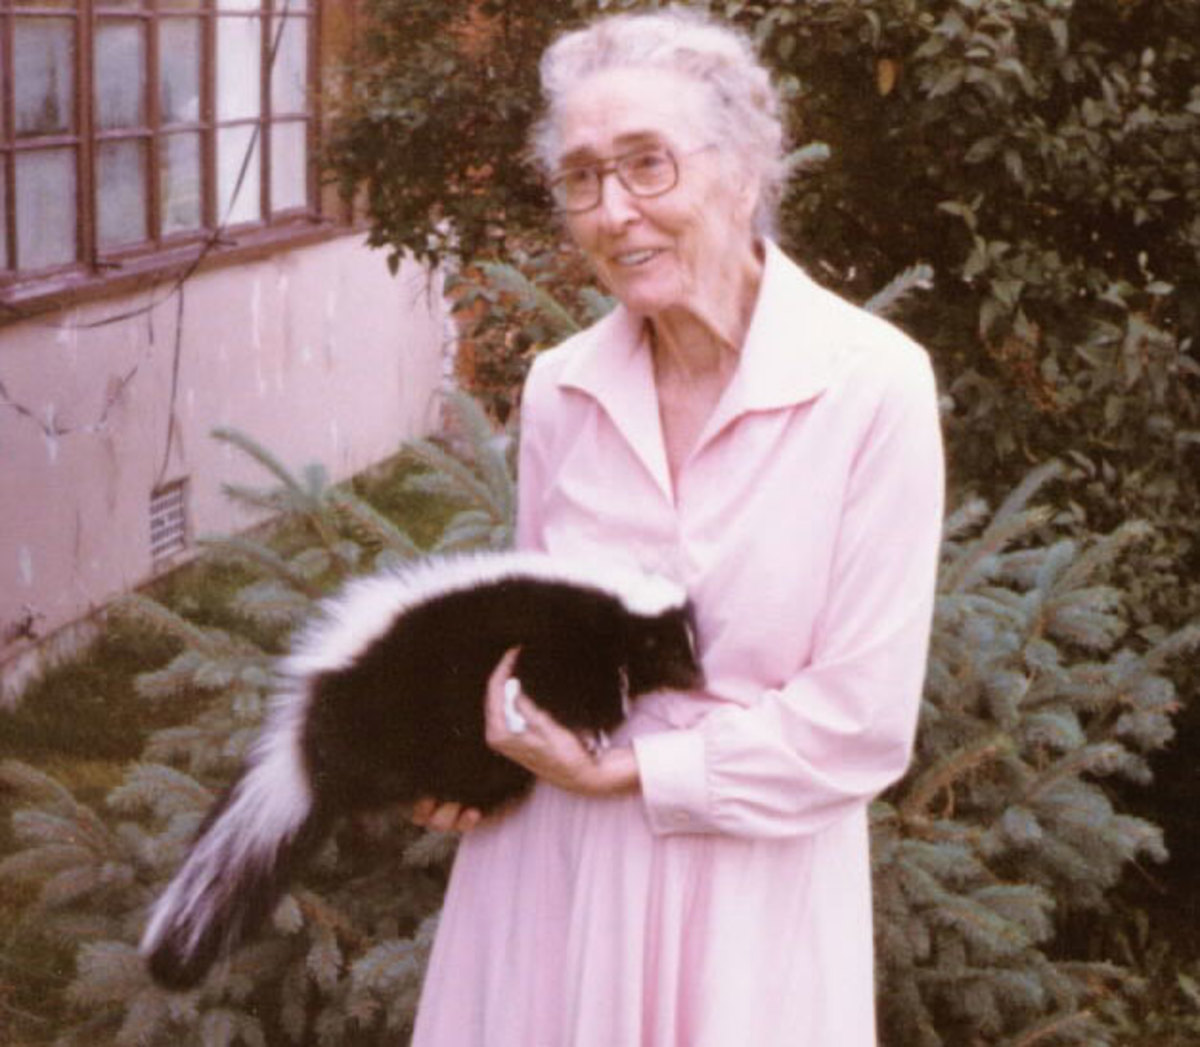 This doubtful attitude is common among people holding a pet skunk.